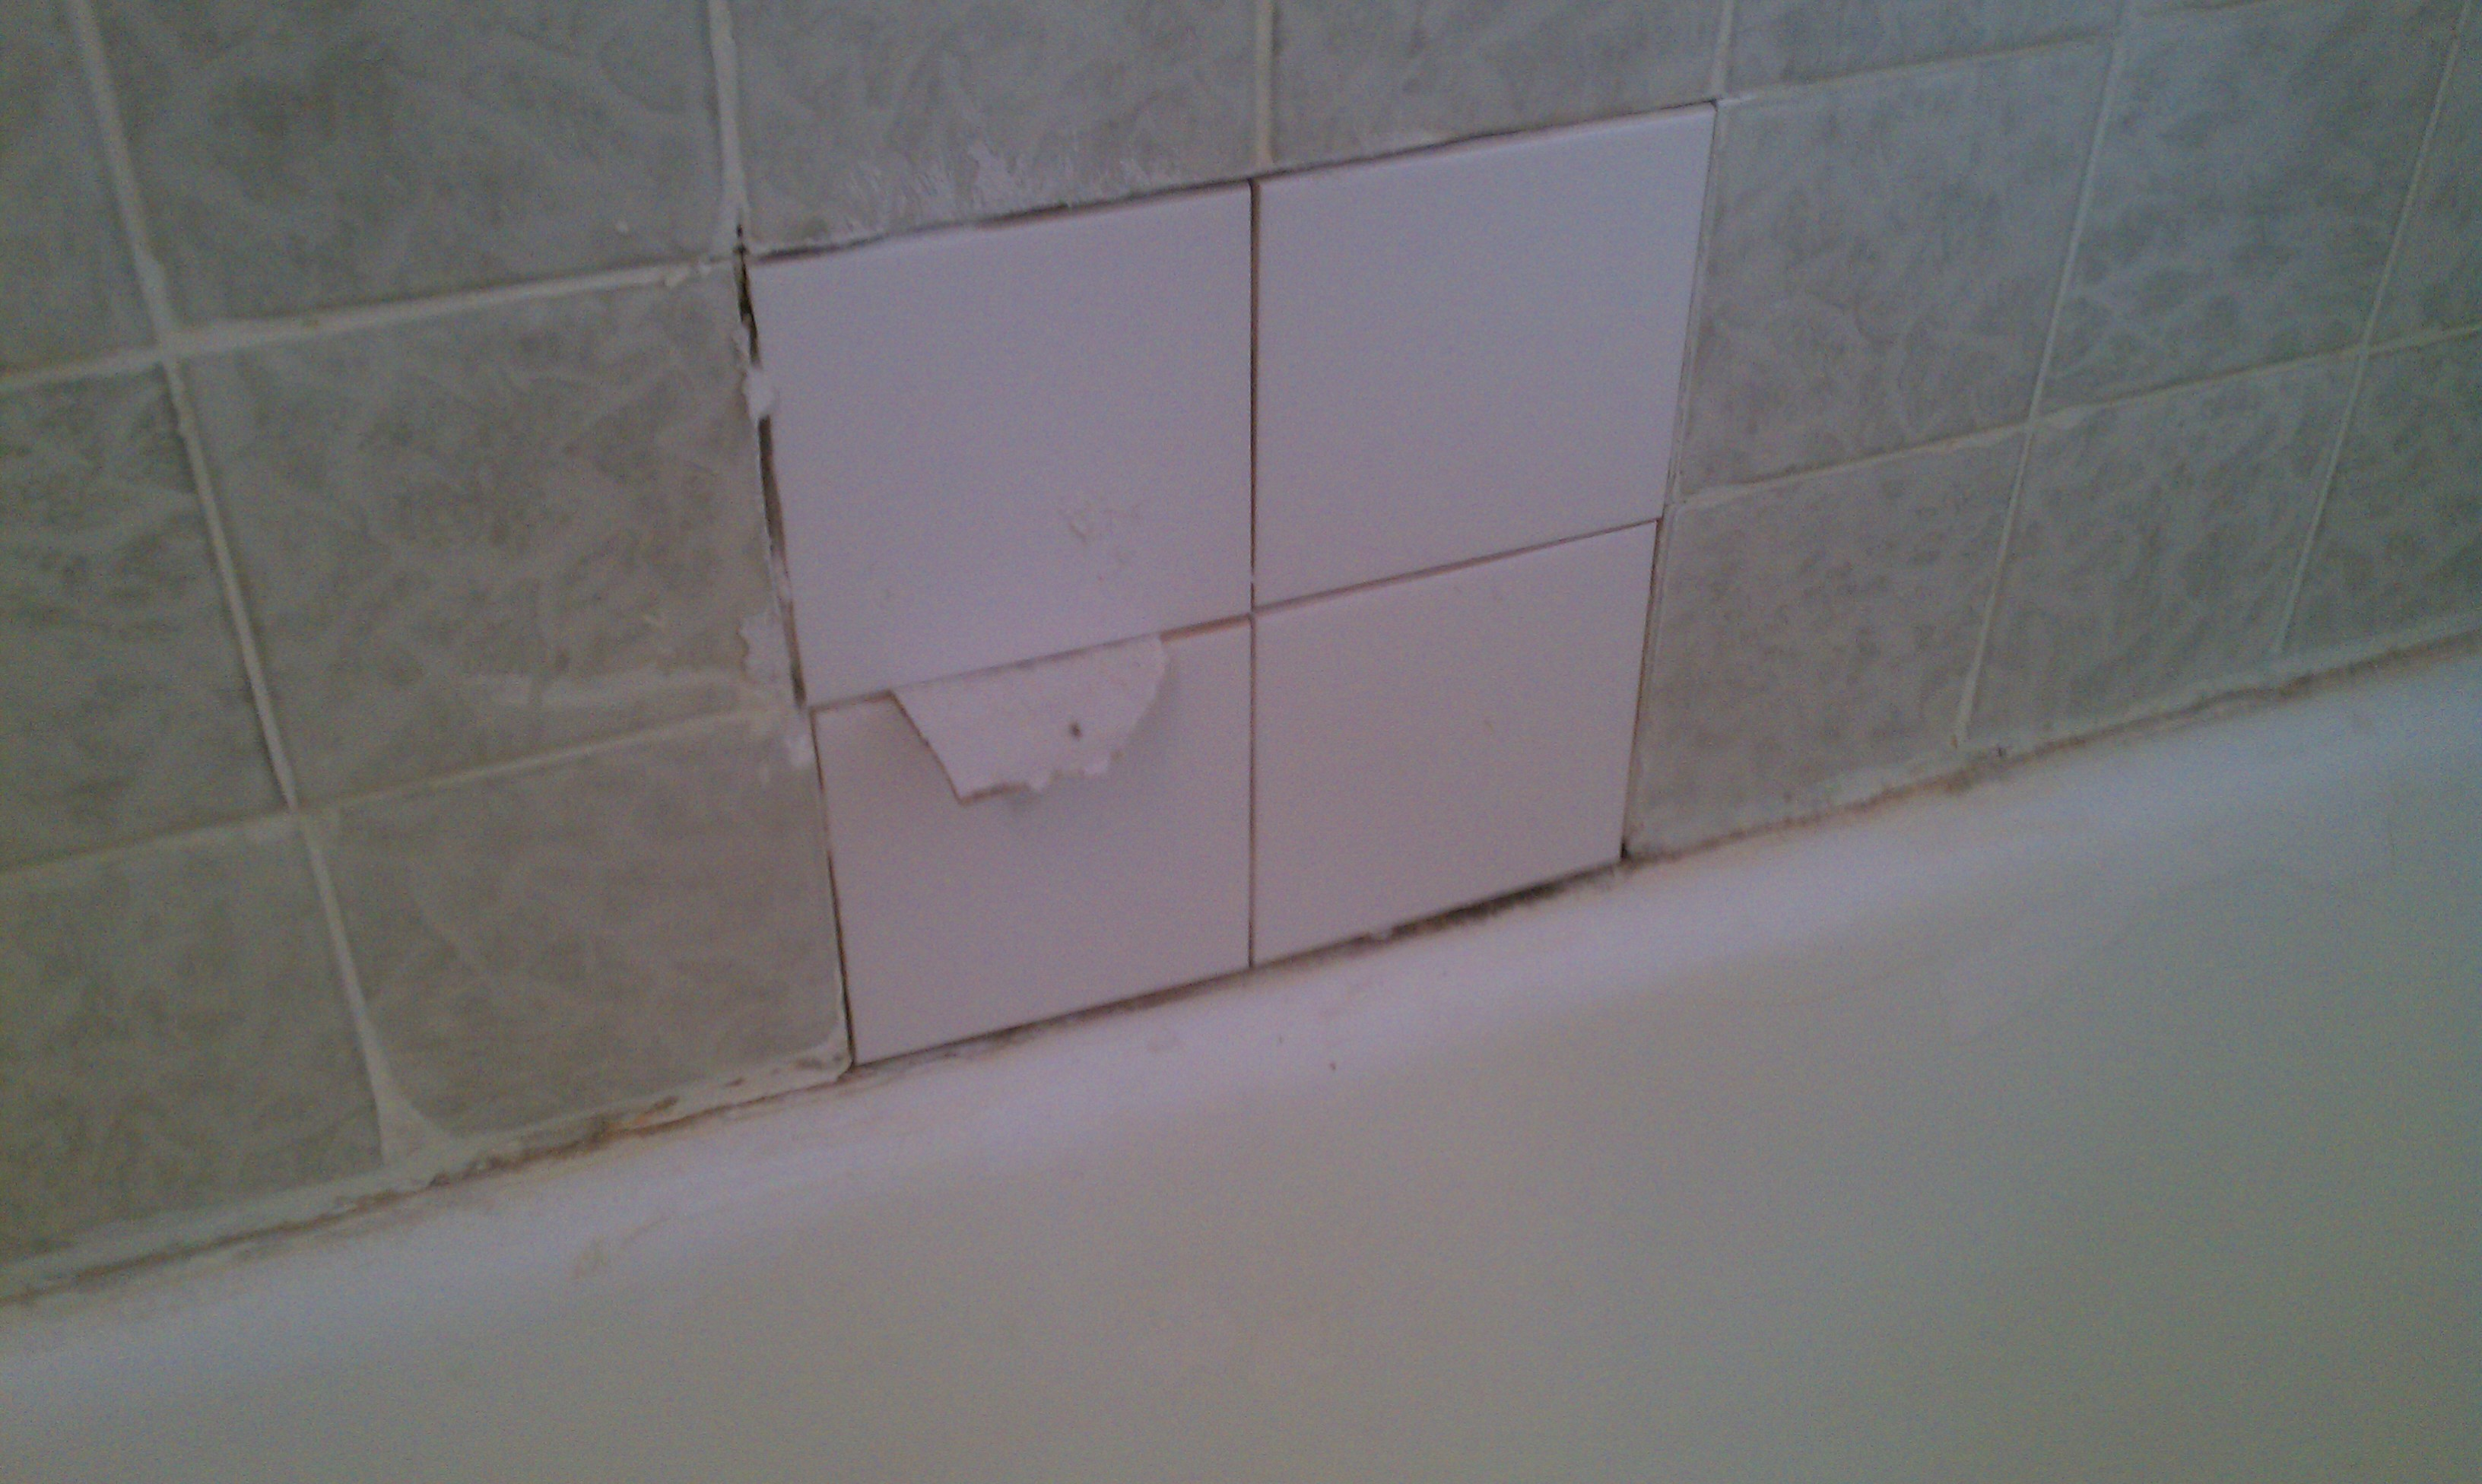 Refinish Bathroom Tile tile refinishing will make your bathroom look like new again